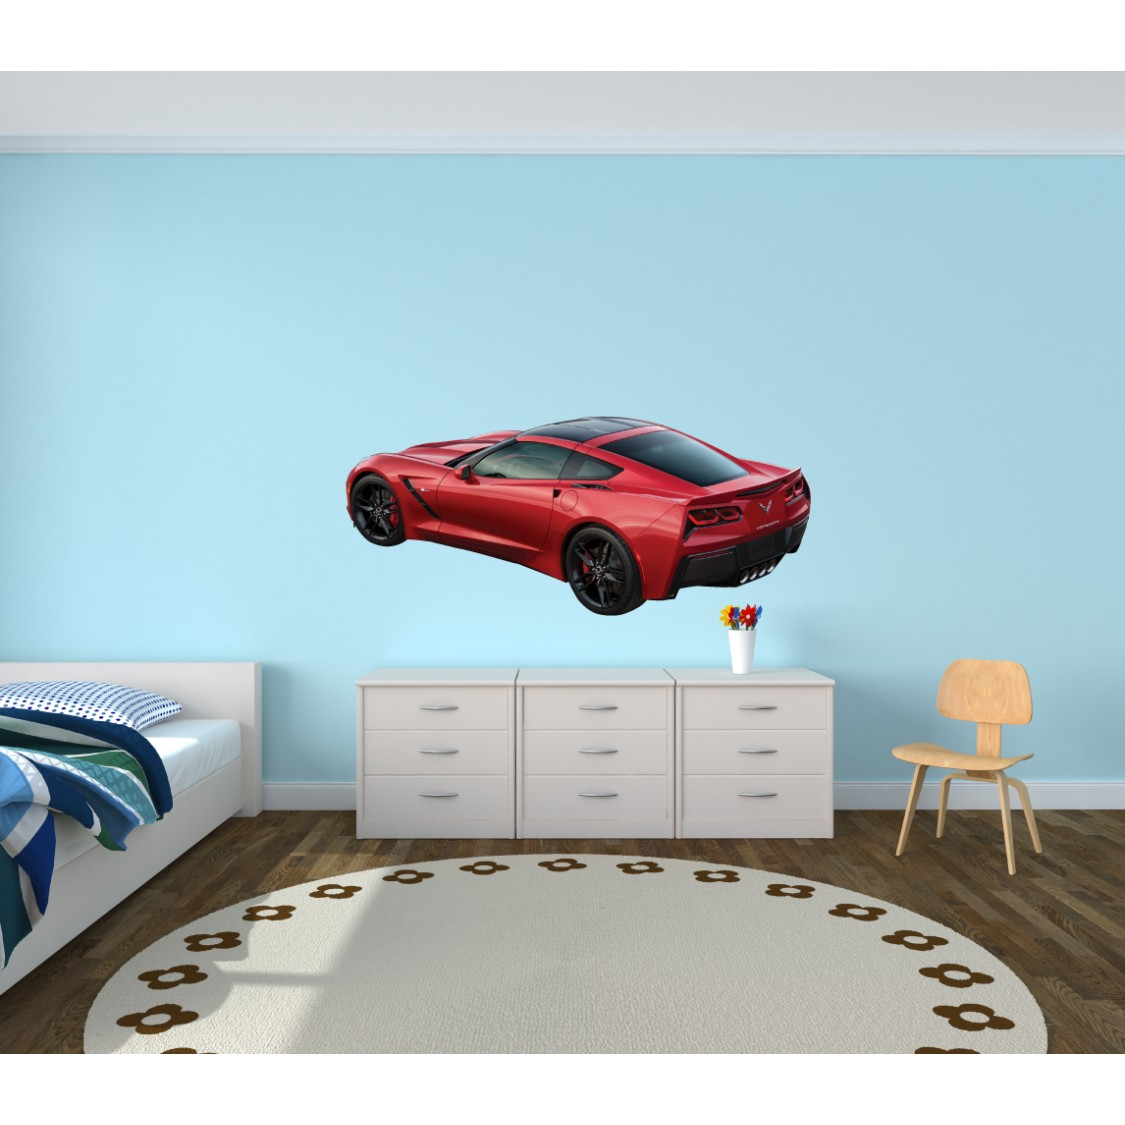 Peel And Stick Wall Decor With Car Wall Art For Children